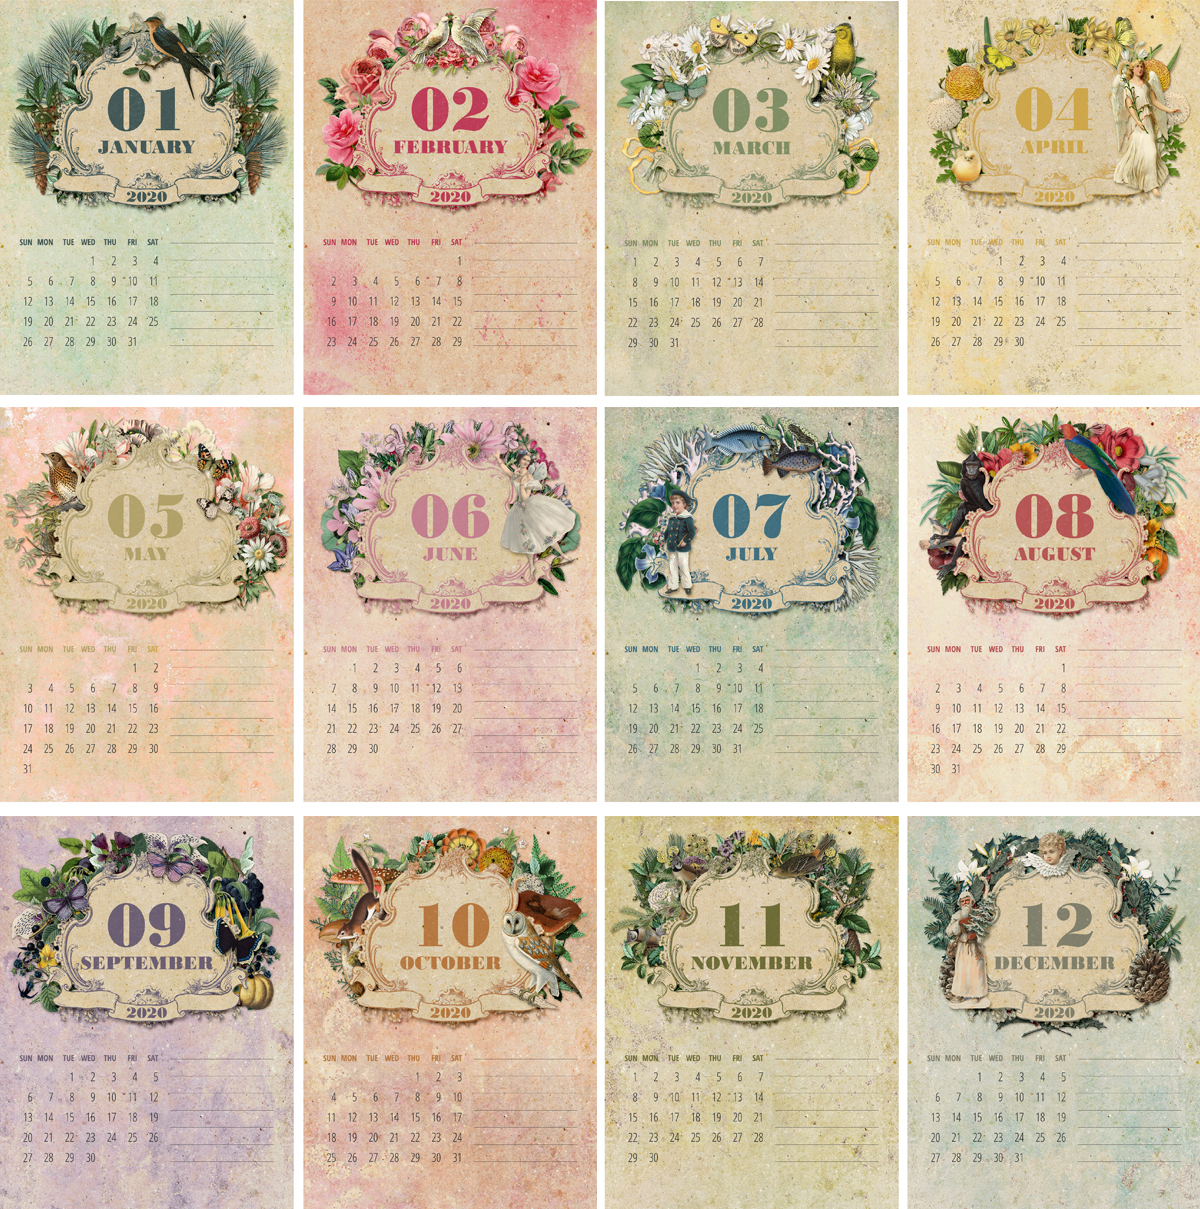 Free Printable Calendar 2020 – Cd Case Calendar! - The